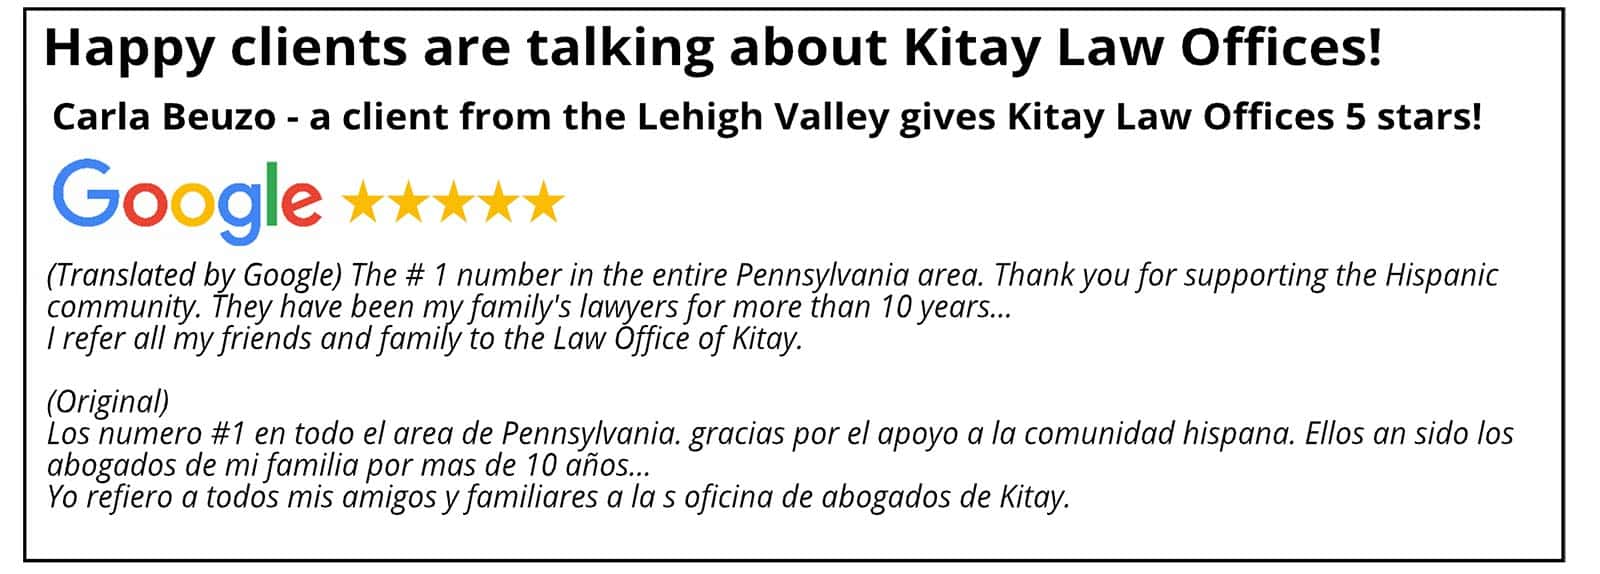 Lehigh Valley Personal Injury Law Review - Kitay Law Offices